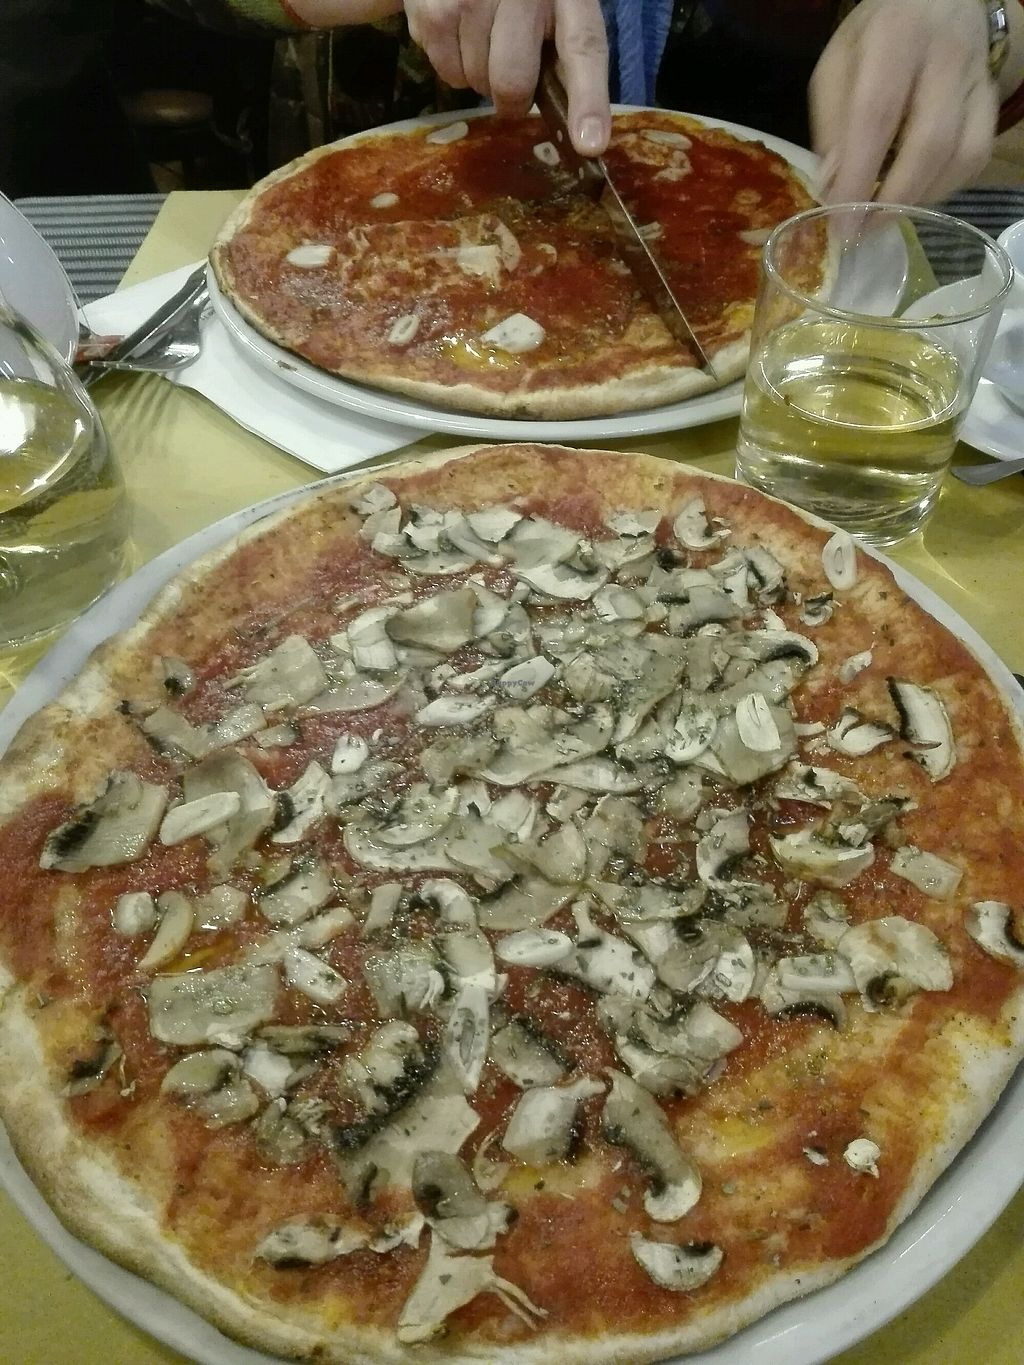 """Photo of L'Insalata Ricca  by <a href=""""/members/profile/MartinaA."""">MartinaA.</a> <br/>Vegane Pizza <br/> March 18, 2018  - <a href='/contact/abuse/image/57106/372637'>Report</a>"""